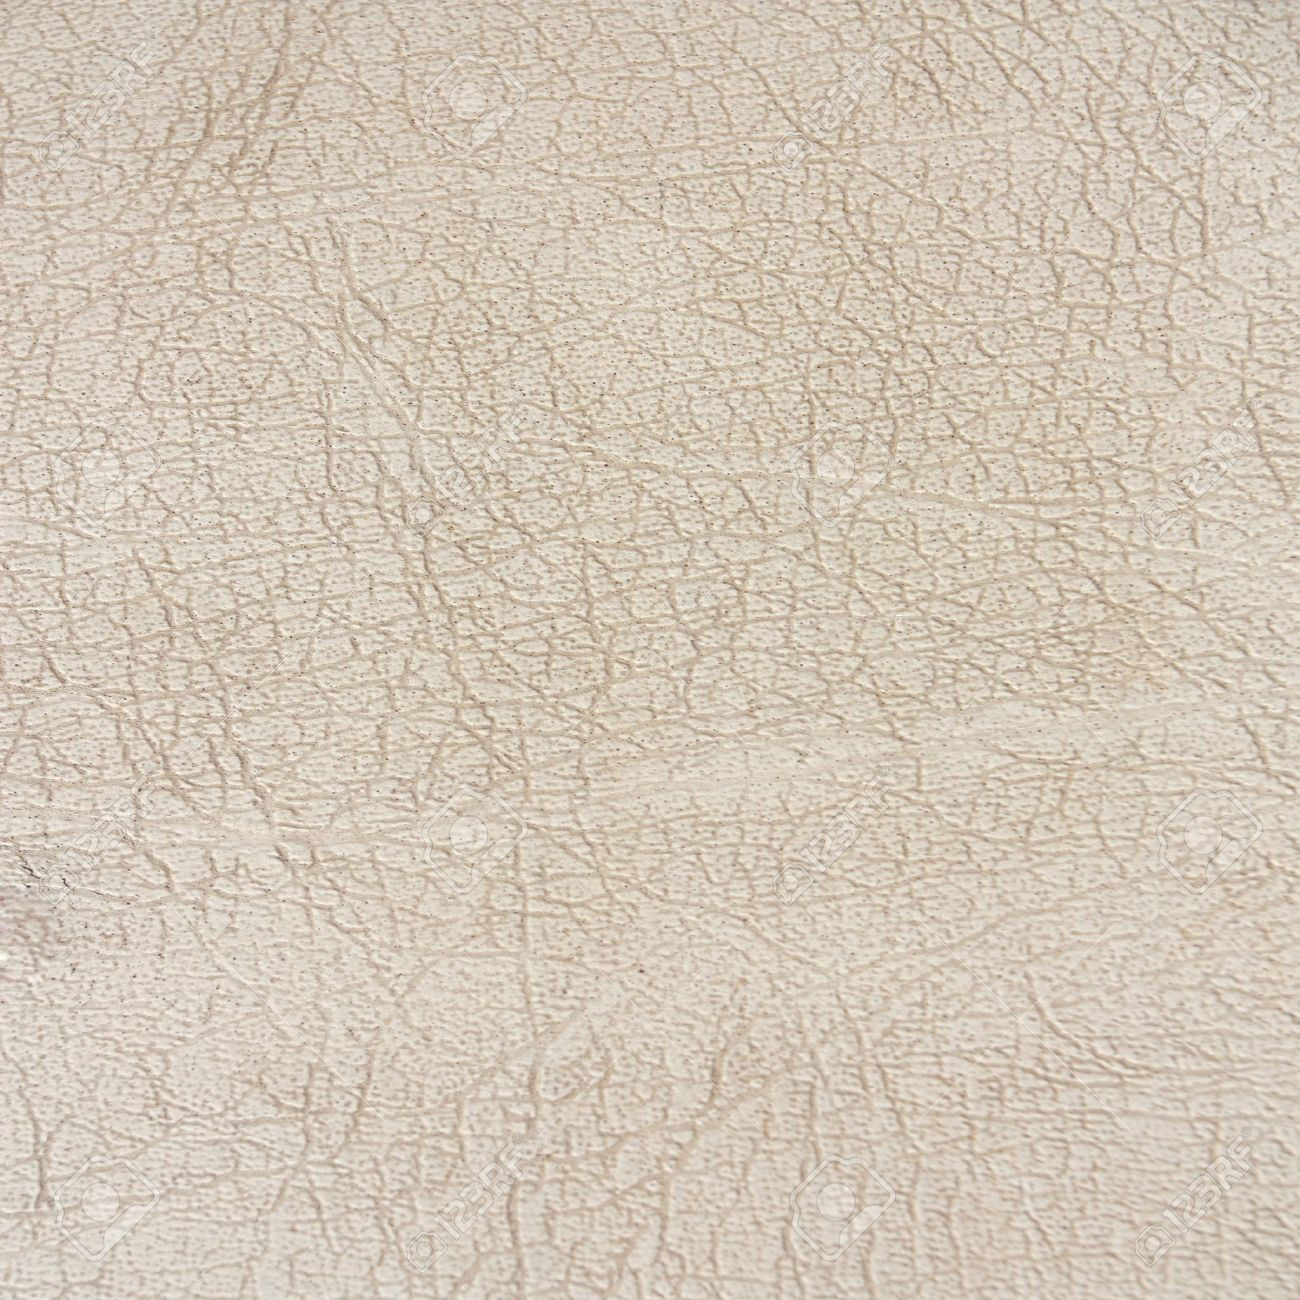 old leather texture background Stock Photo - 16296272